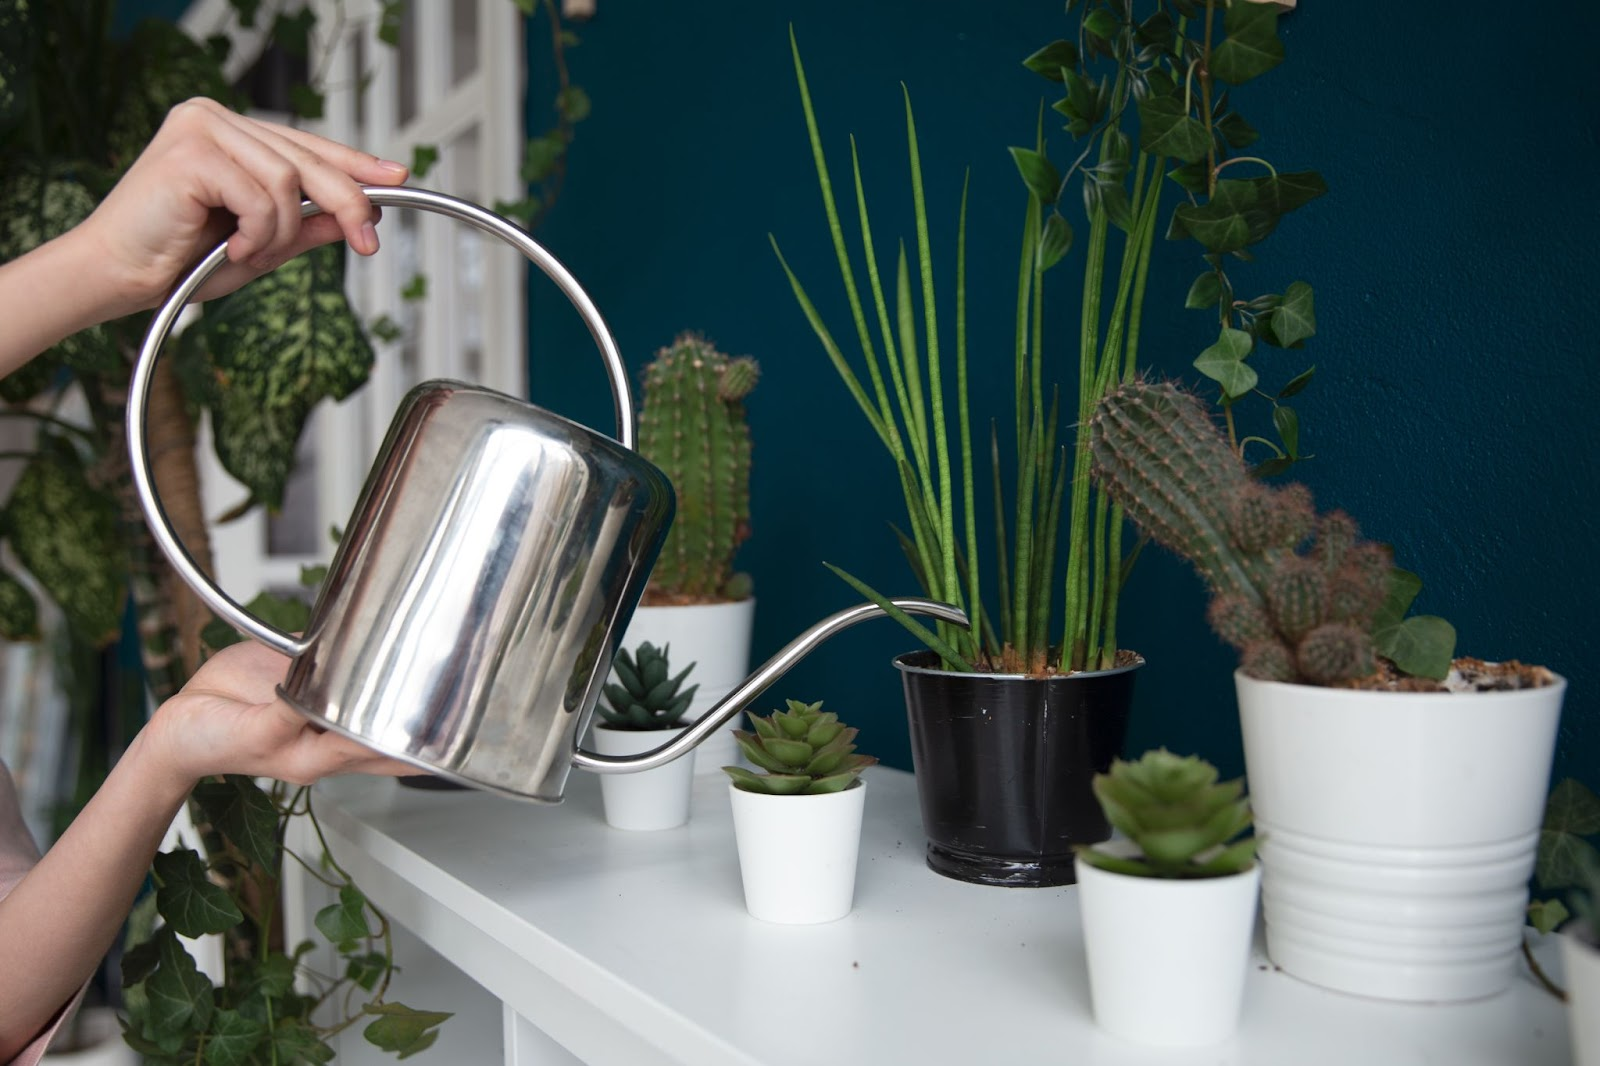 Image of person watering plants with a silver watering can.